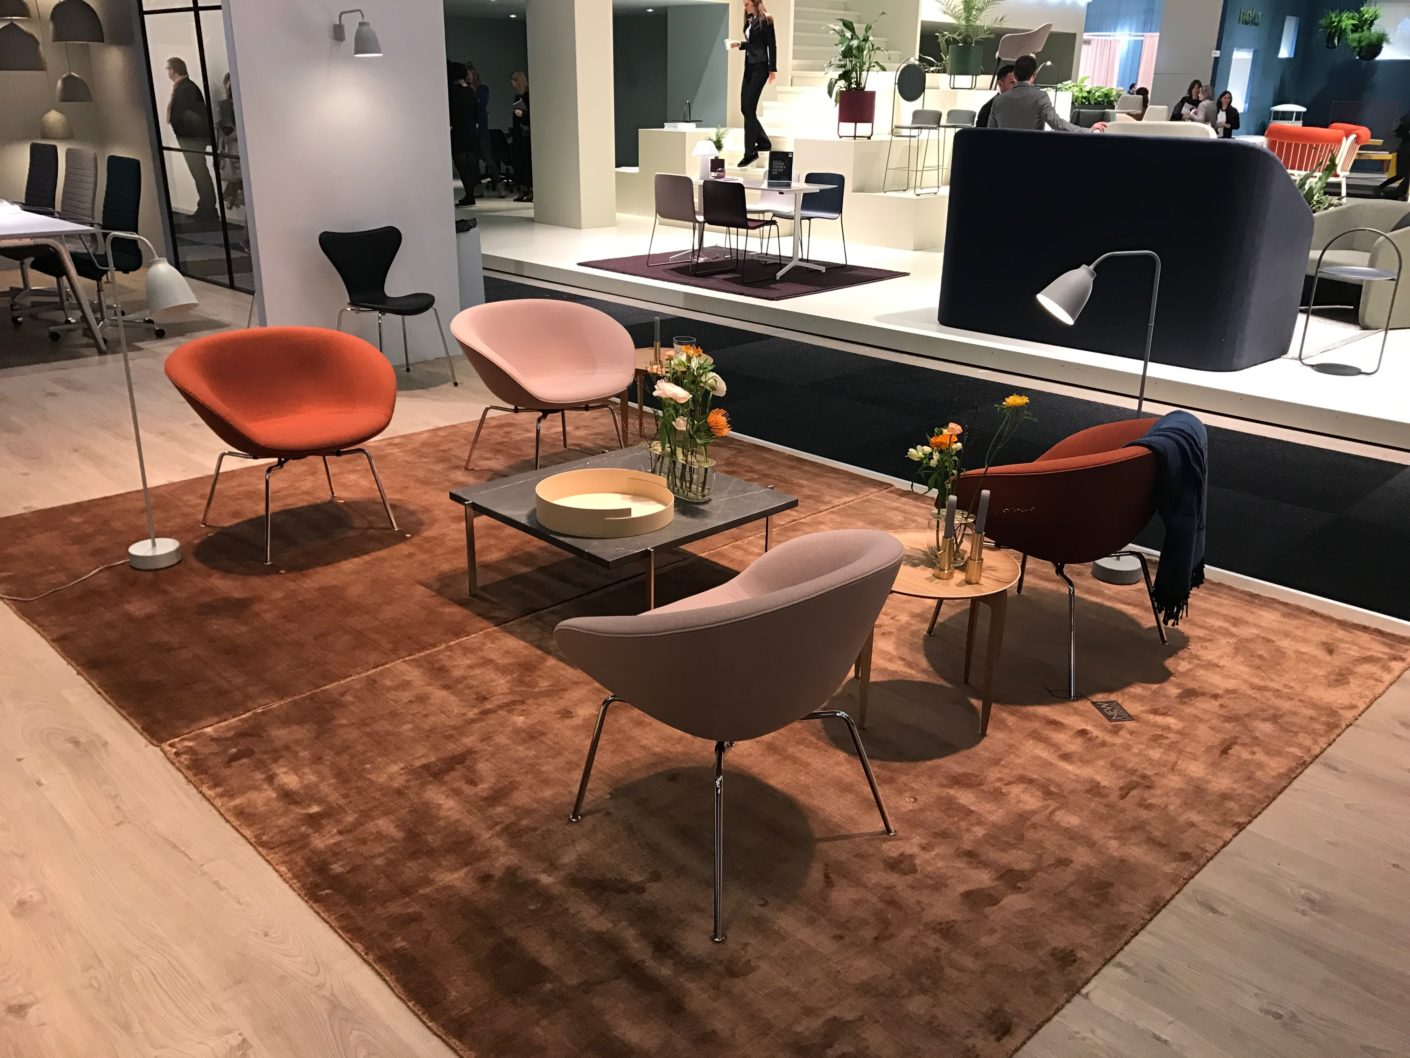 Stockholm Furniture and Light Fair, 2018, Fritz Hansen, Pot, Stylepark